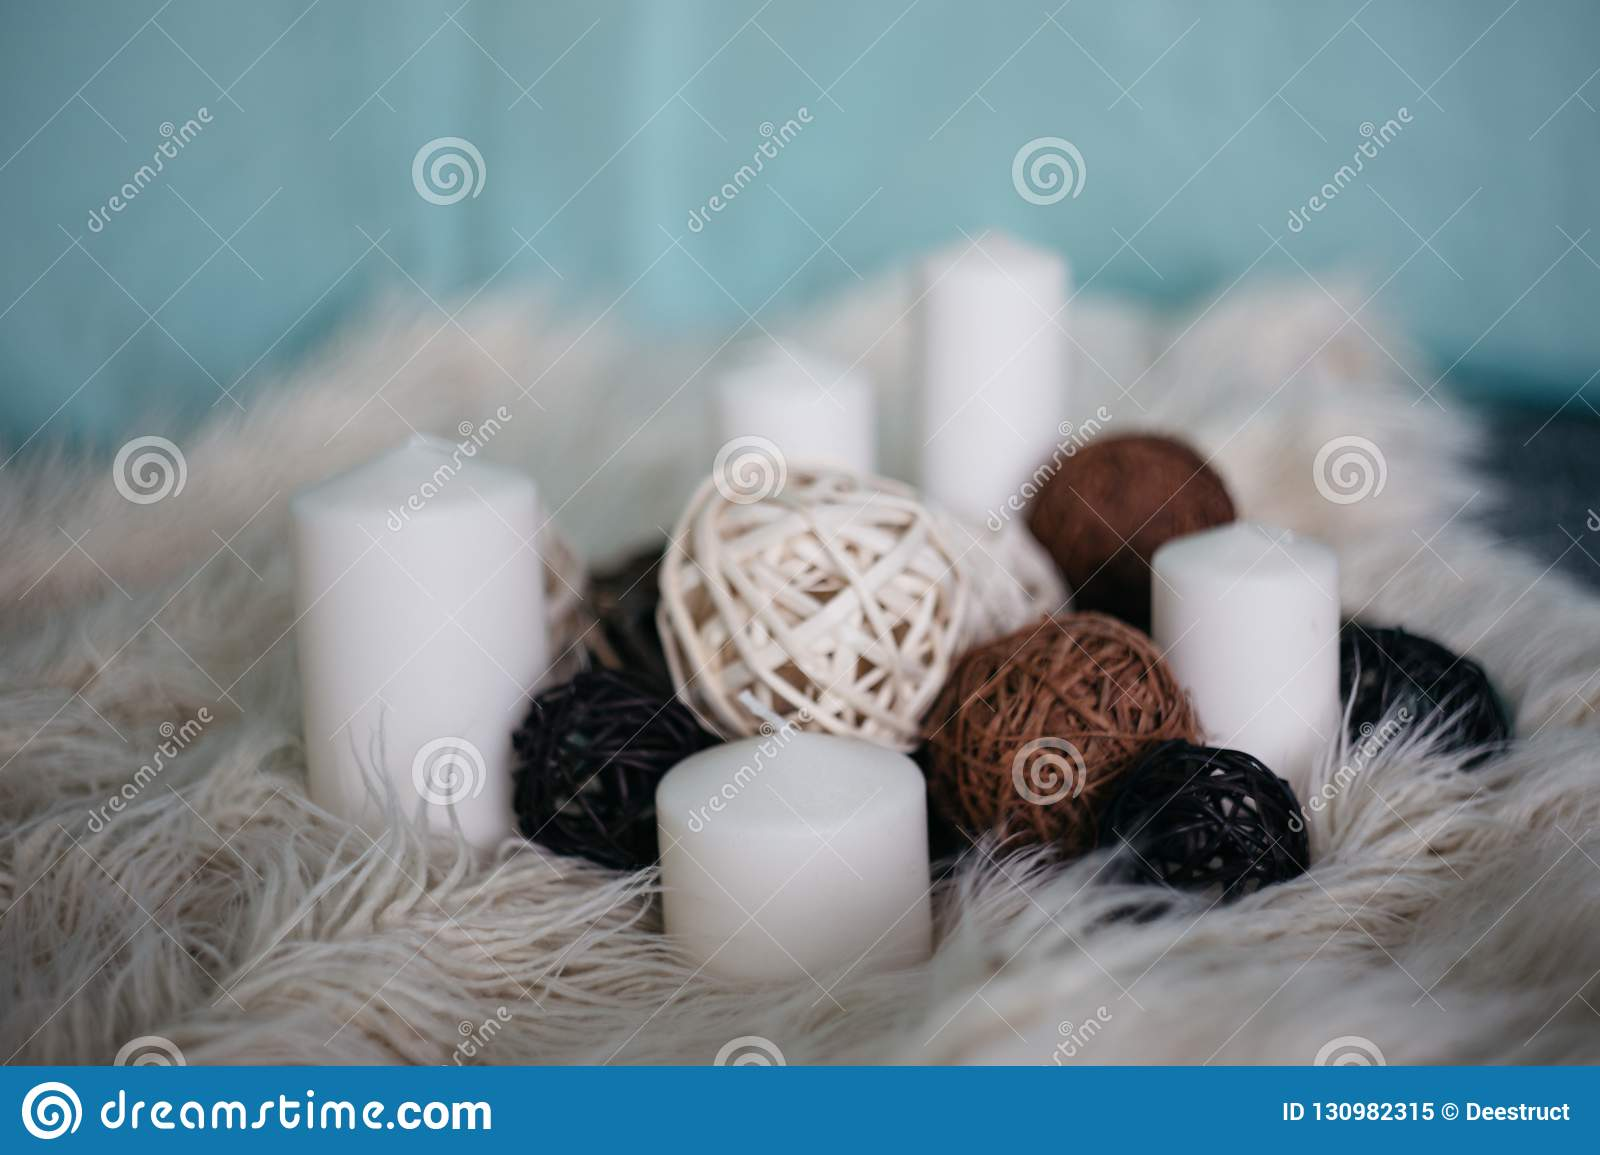 white candles and decor items on white carpet